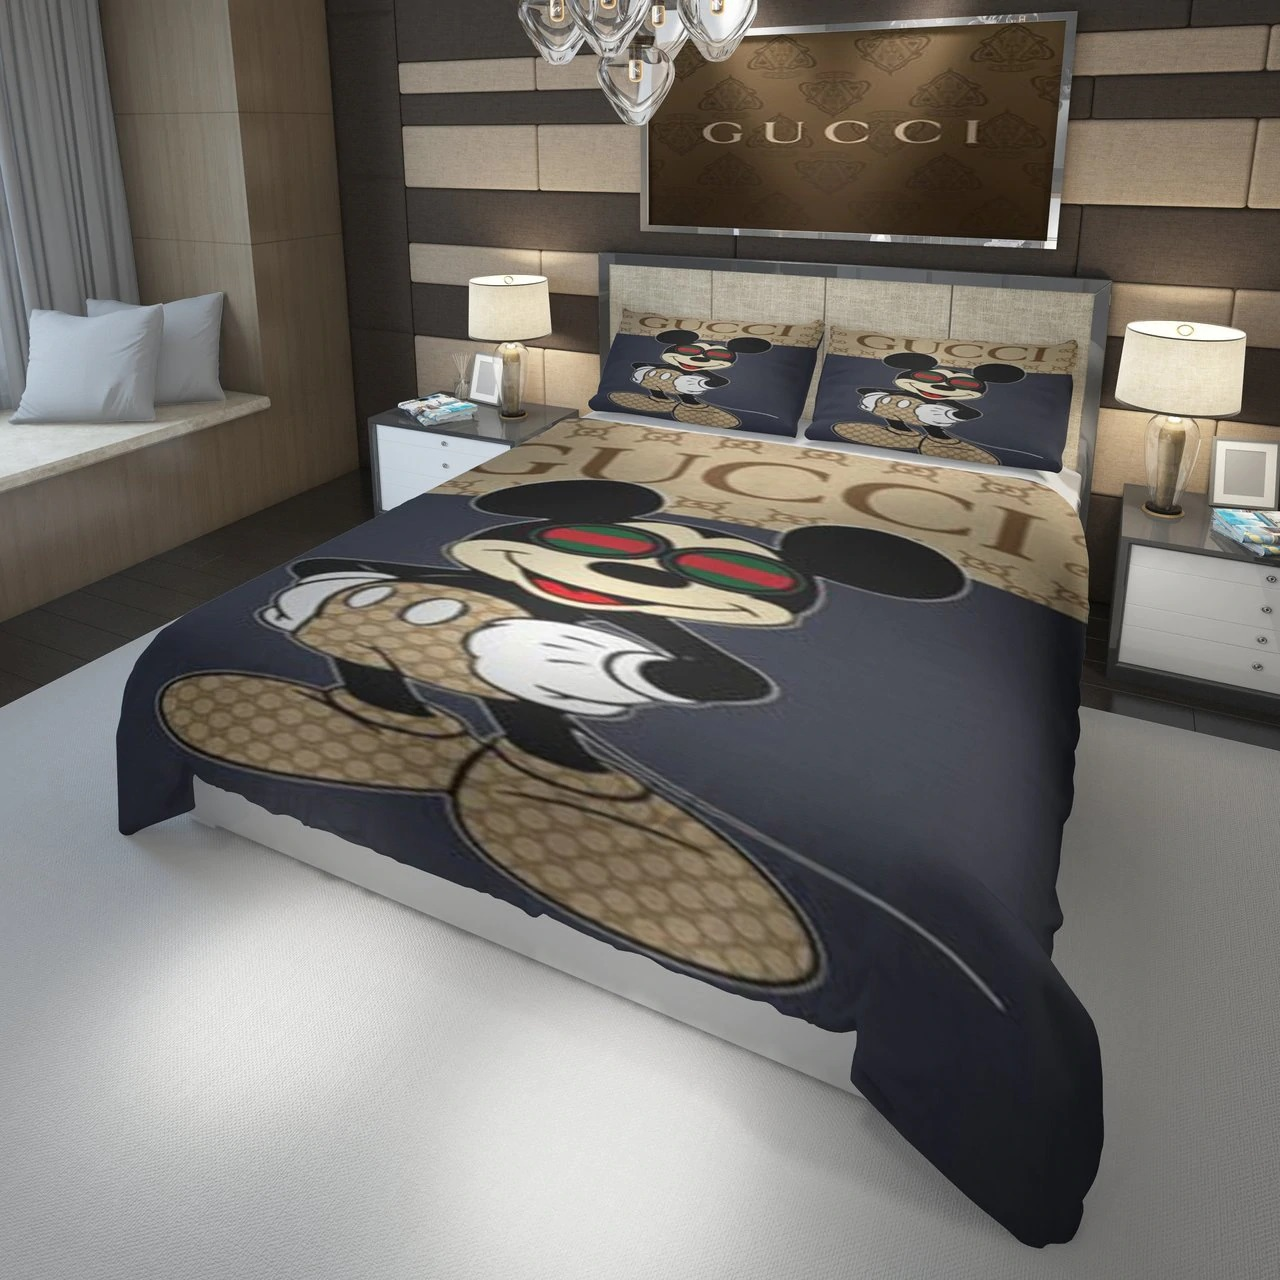 gucci mickey mouse with glasses bedding set 3